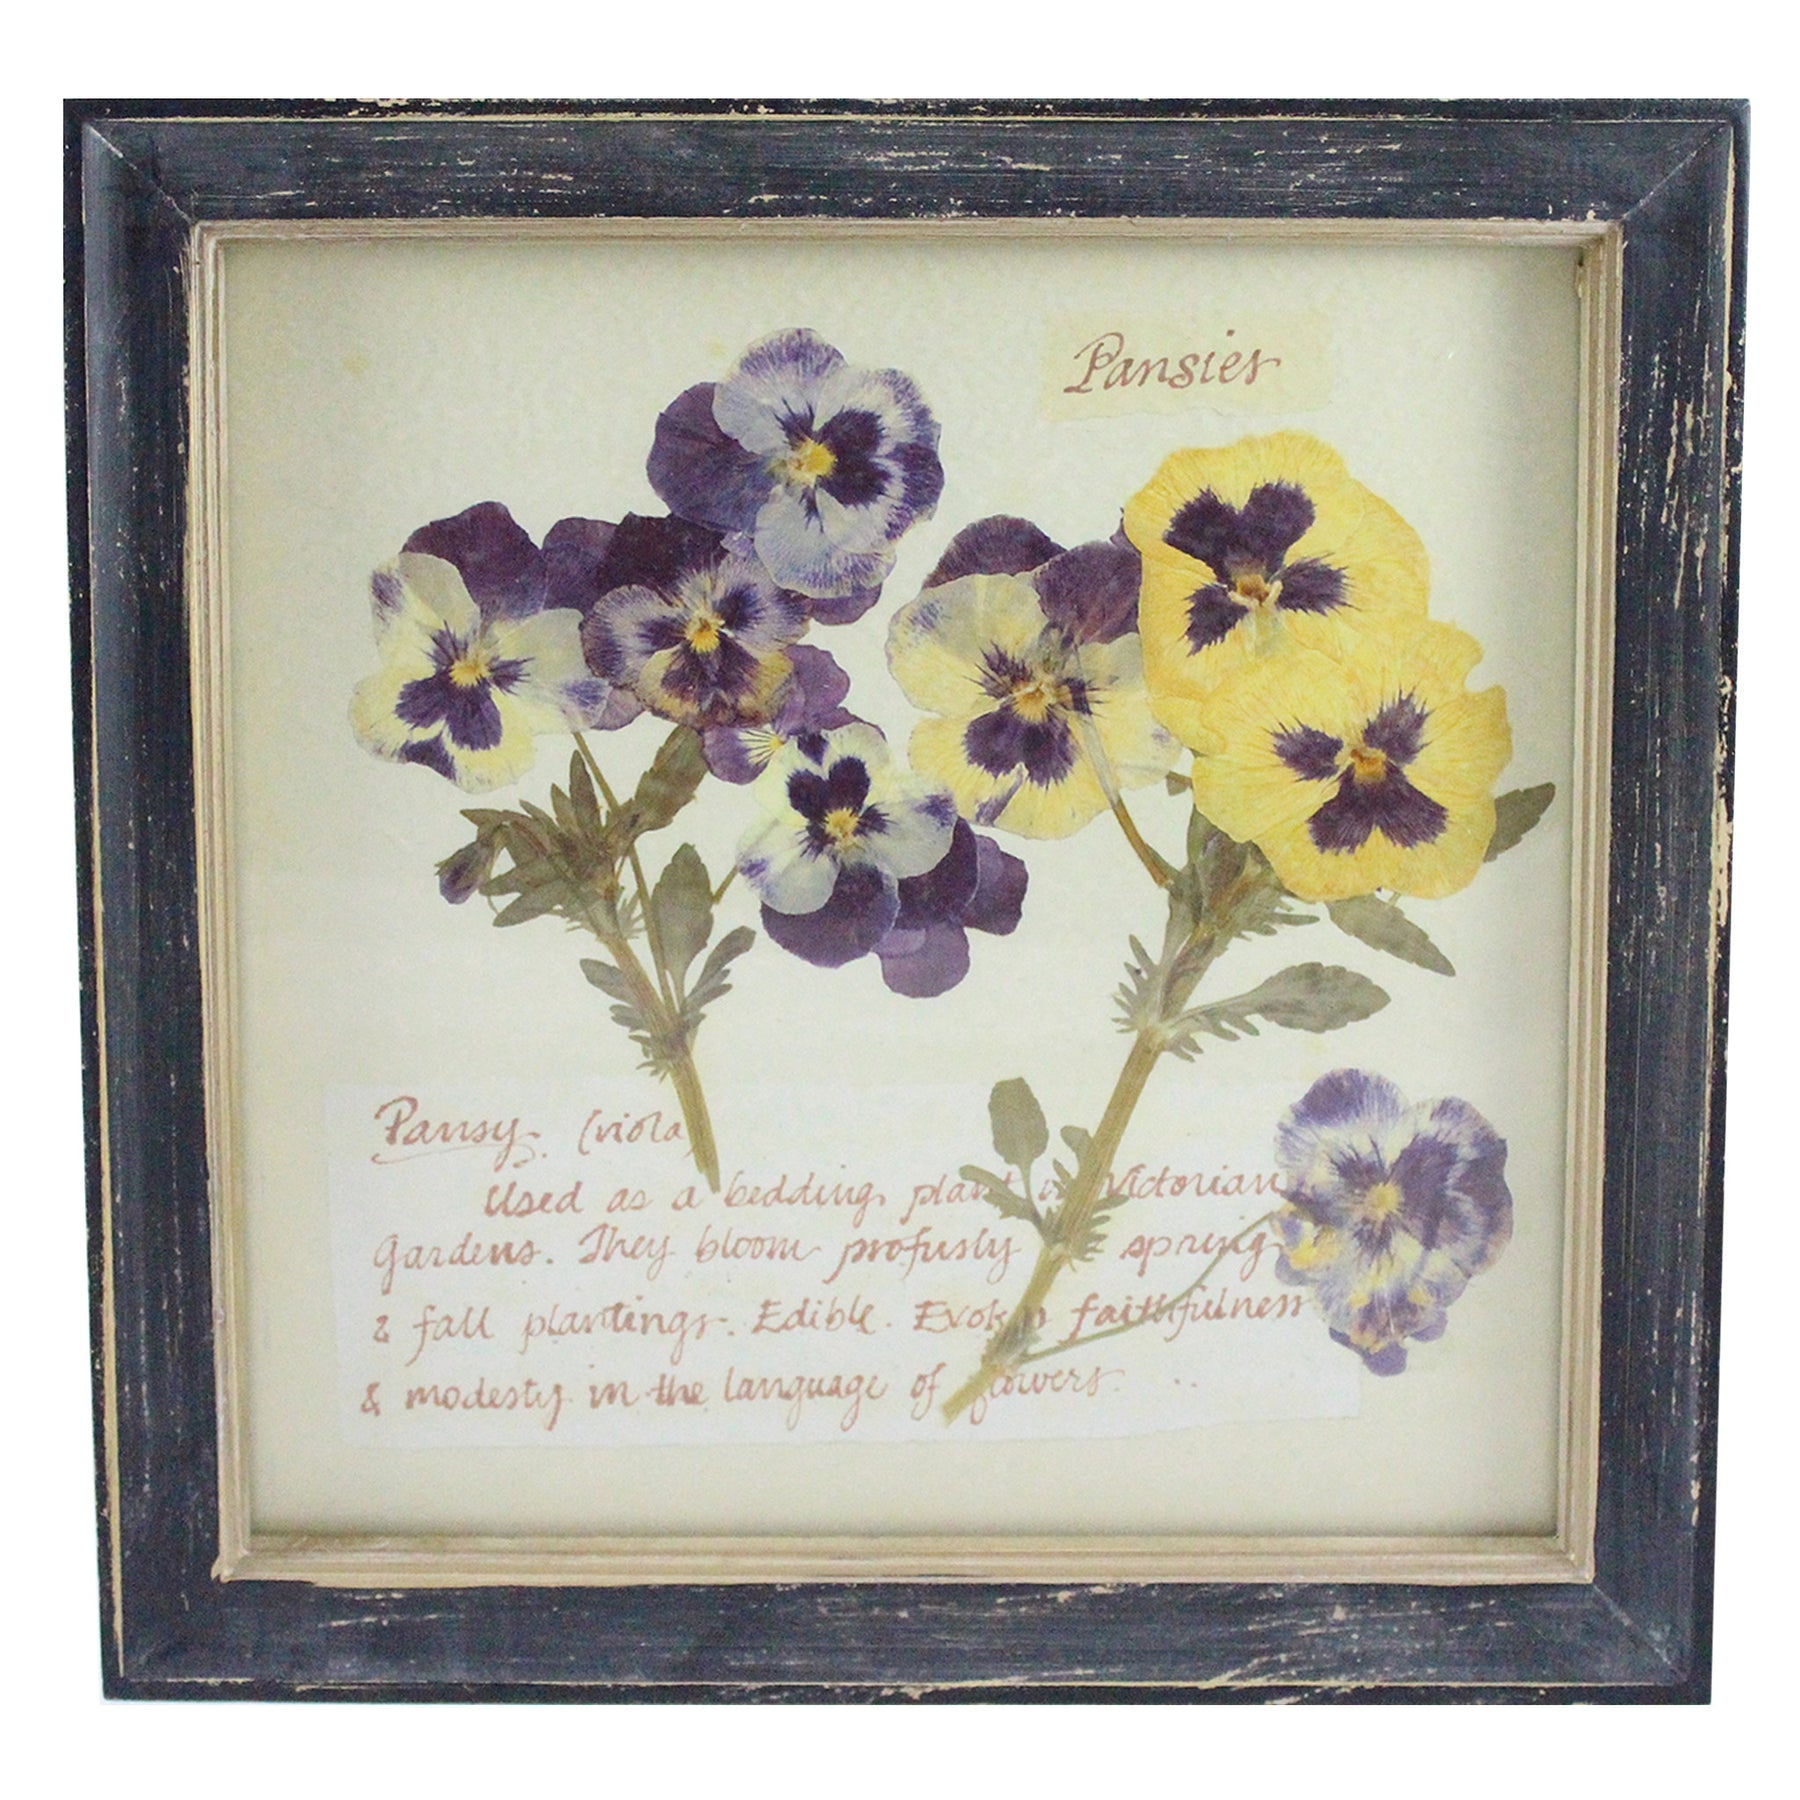 1 Rustic Wood Framed Pansy Pressed Flower Wall Decor Candlestock